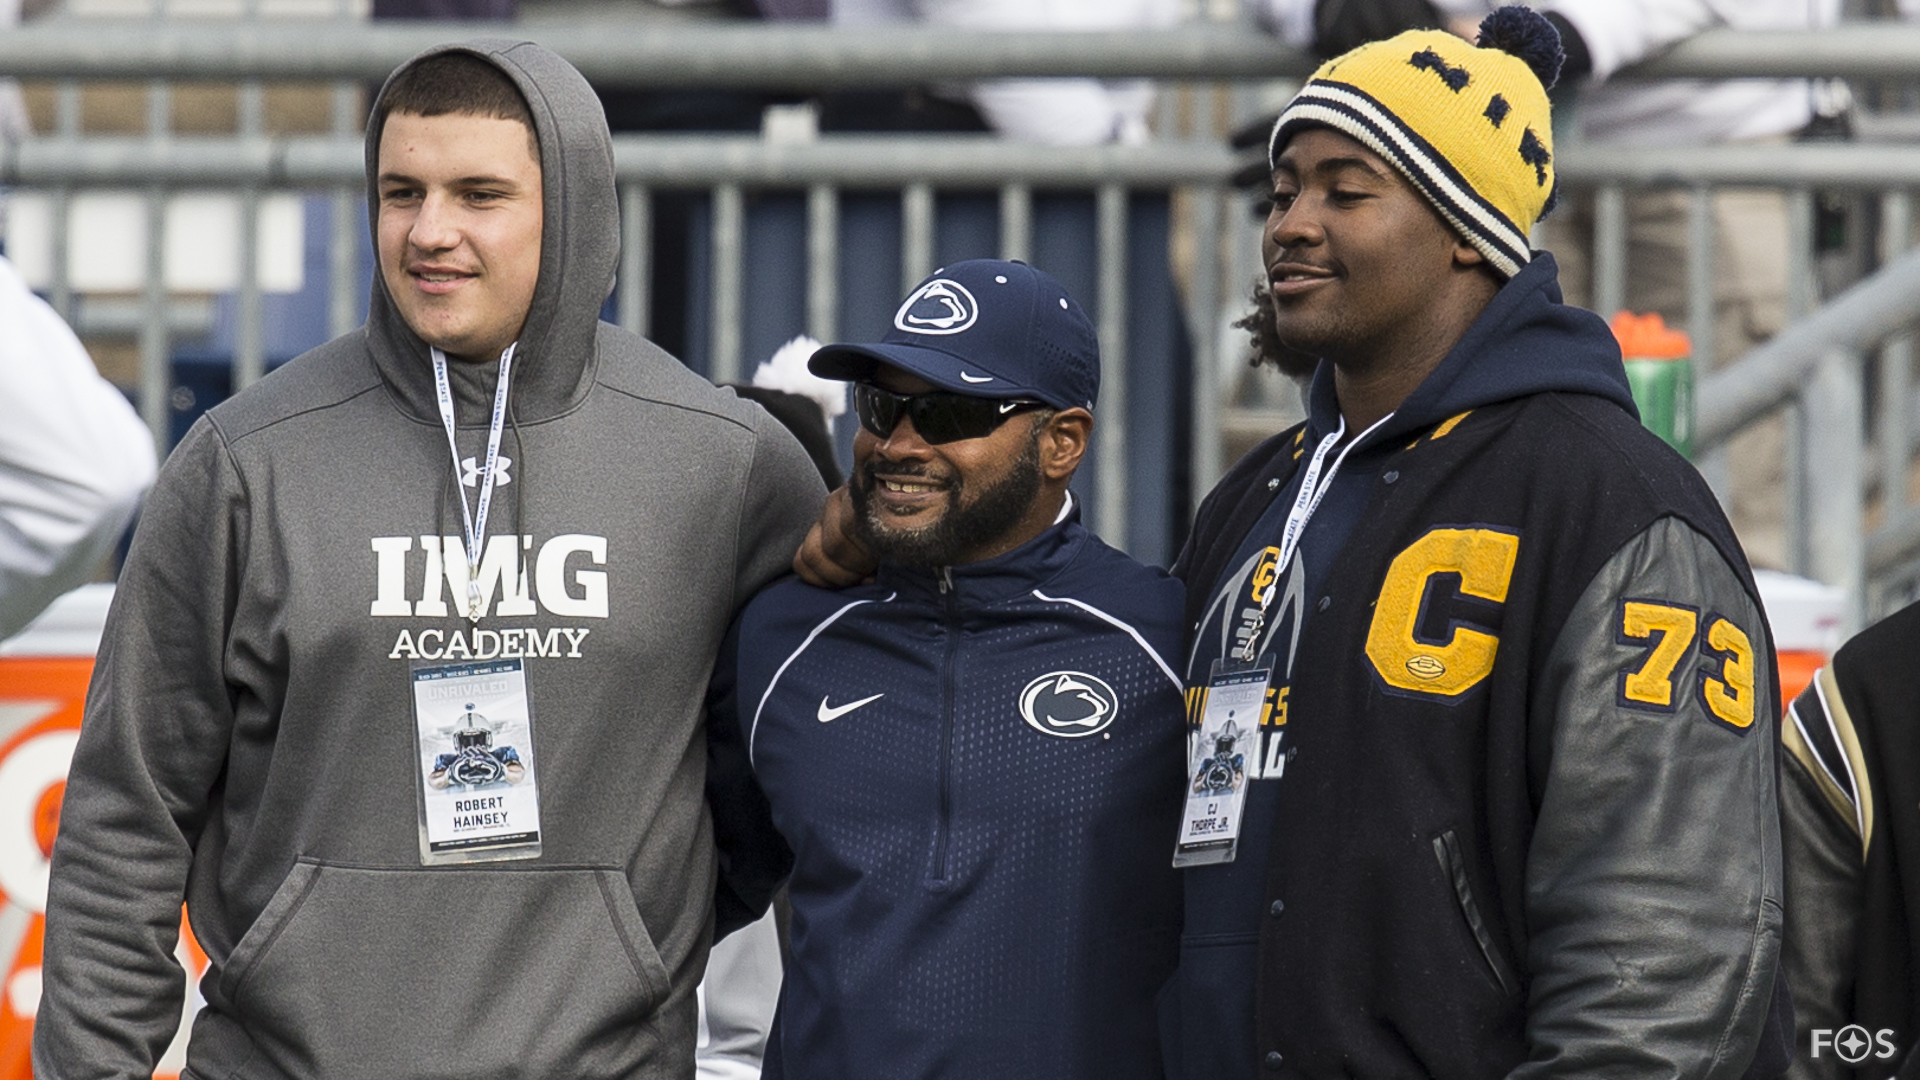 Recruits Robert Gainsay and C.J. Thorpe with Terry Smith (Harvey Levine/FOS)